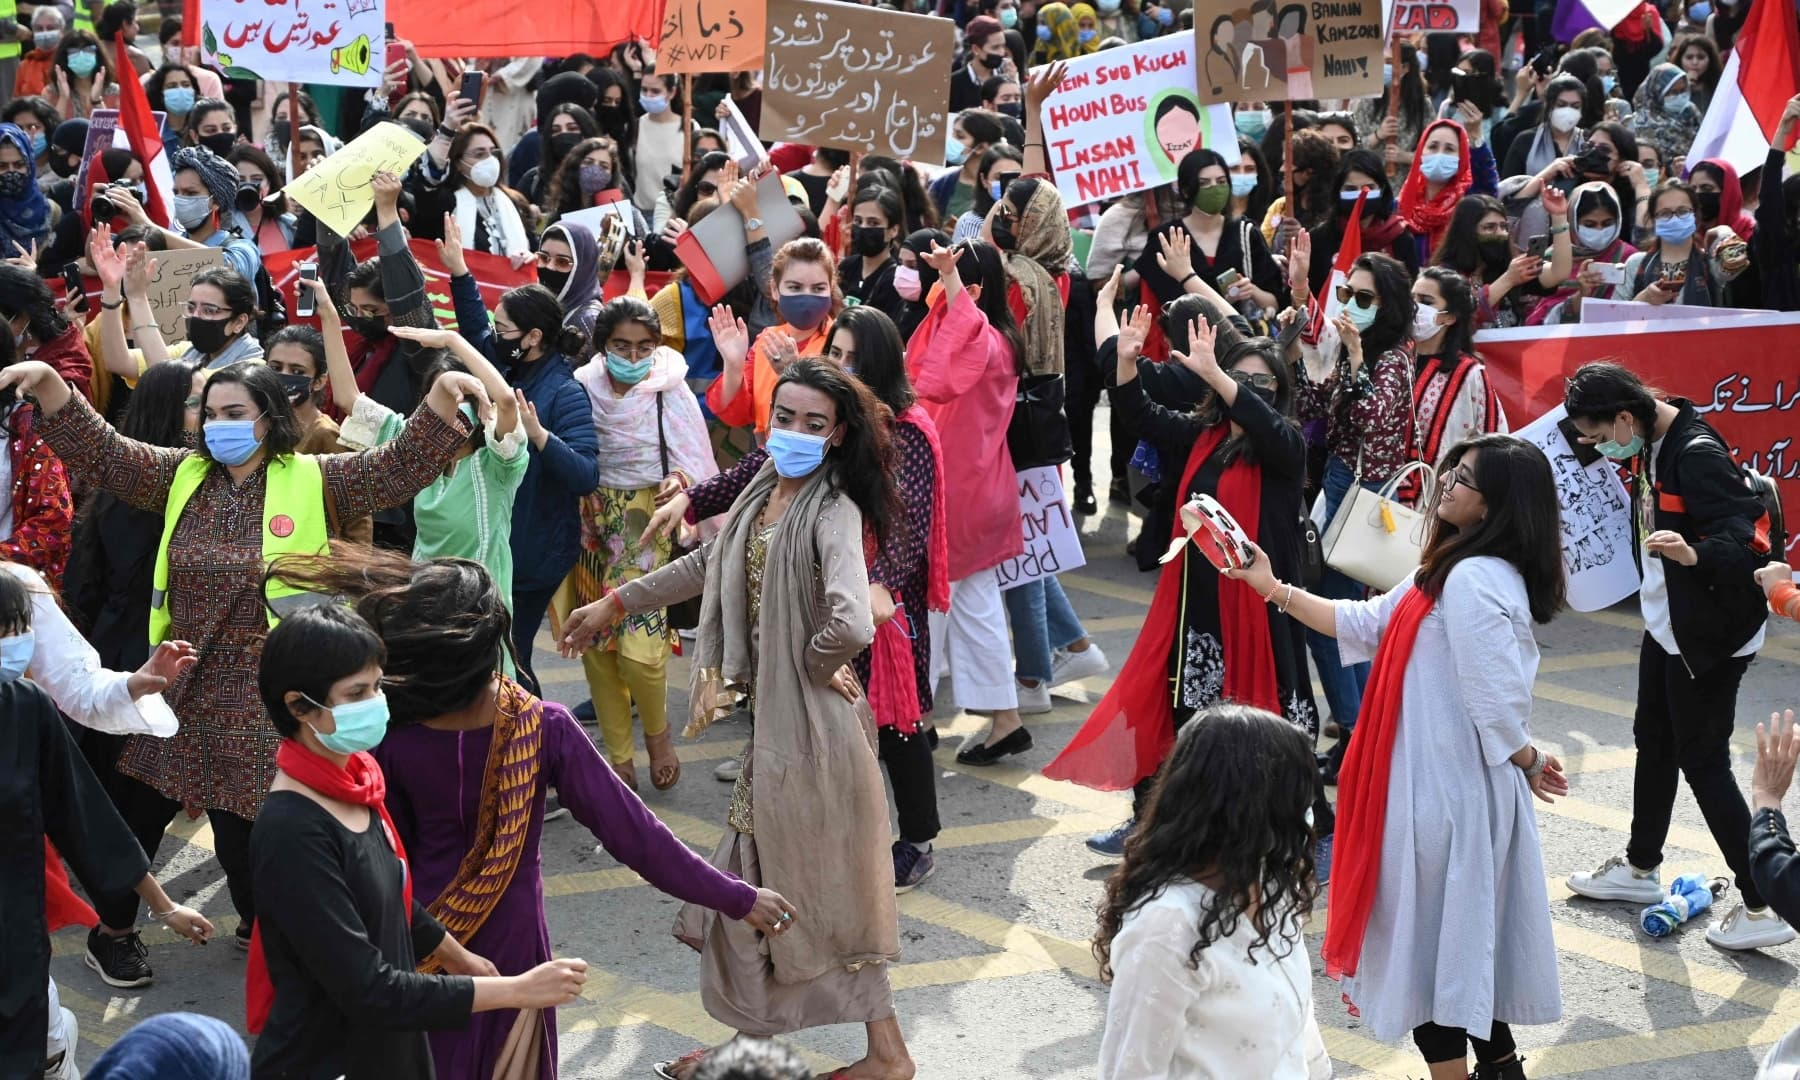 Participants of the Aurat March dance during a rally to mark the International Women's Day in Islamabad on March 8. — AFP